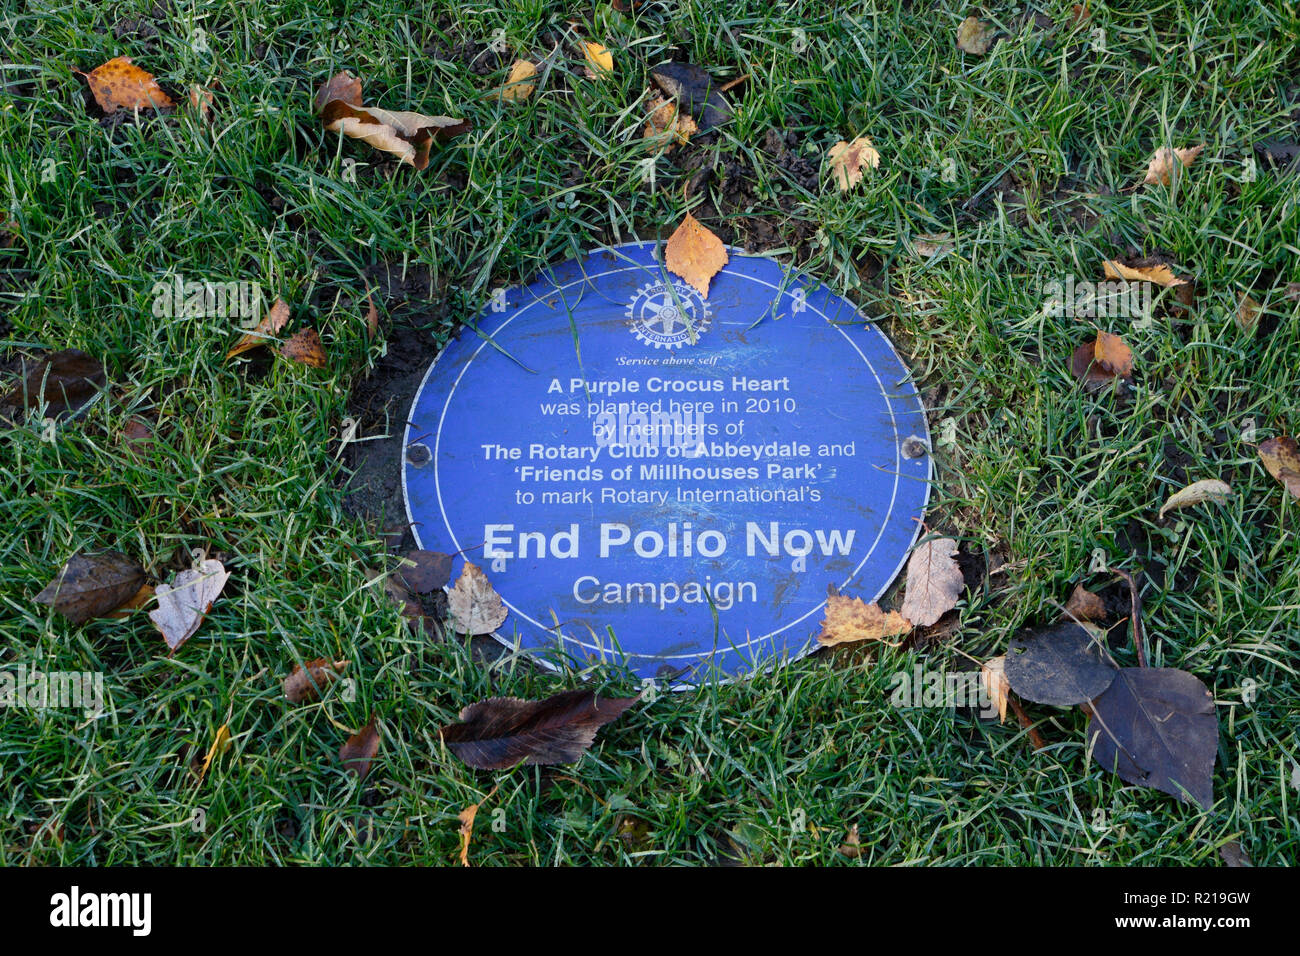 End Polio Now Plaque - Millhouses Park Sheffield UK - Stock Image